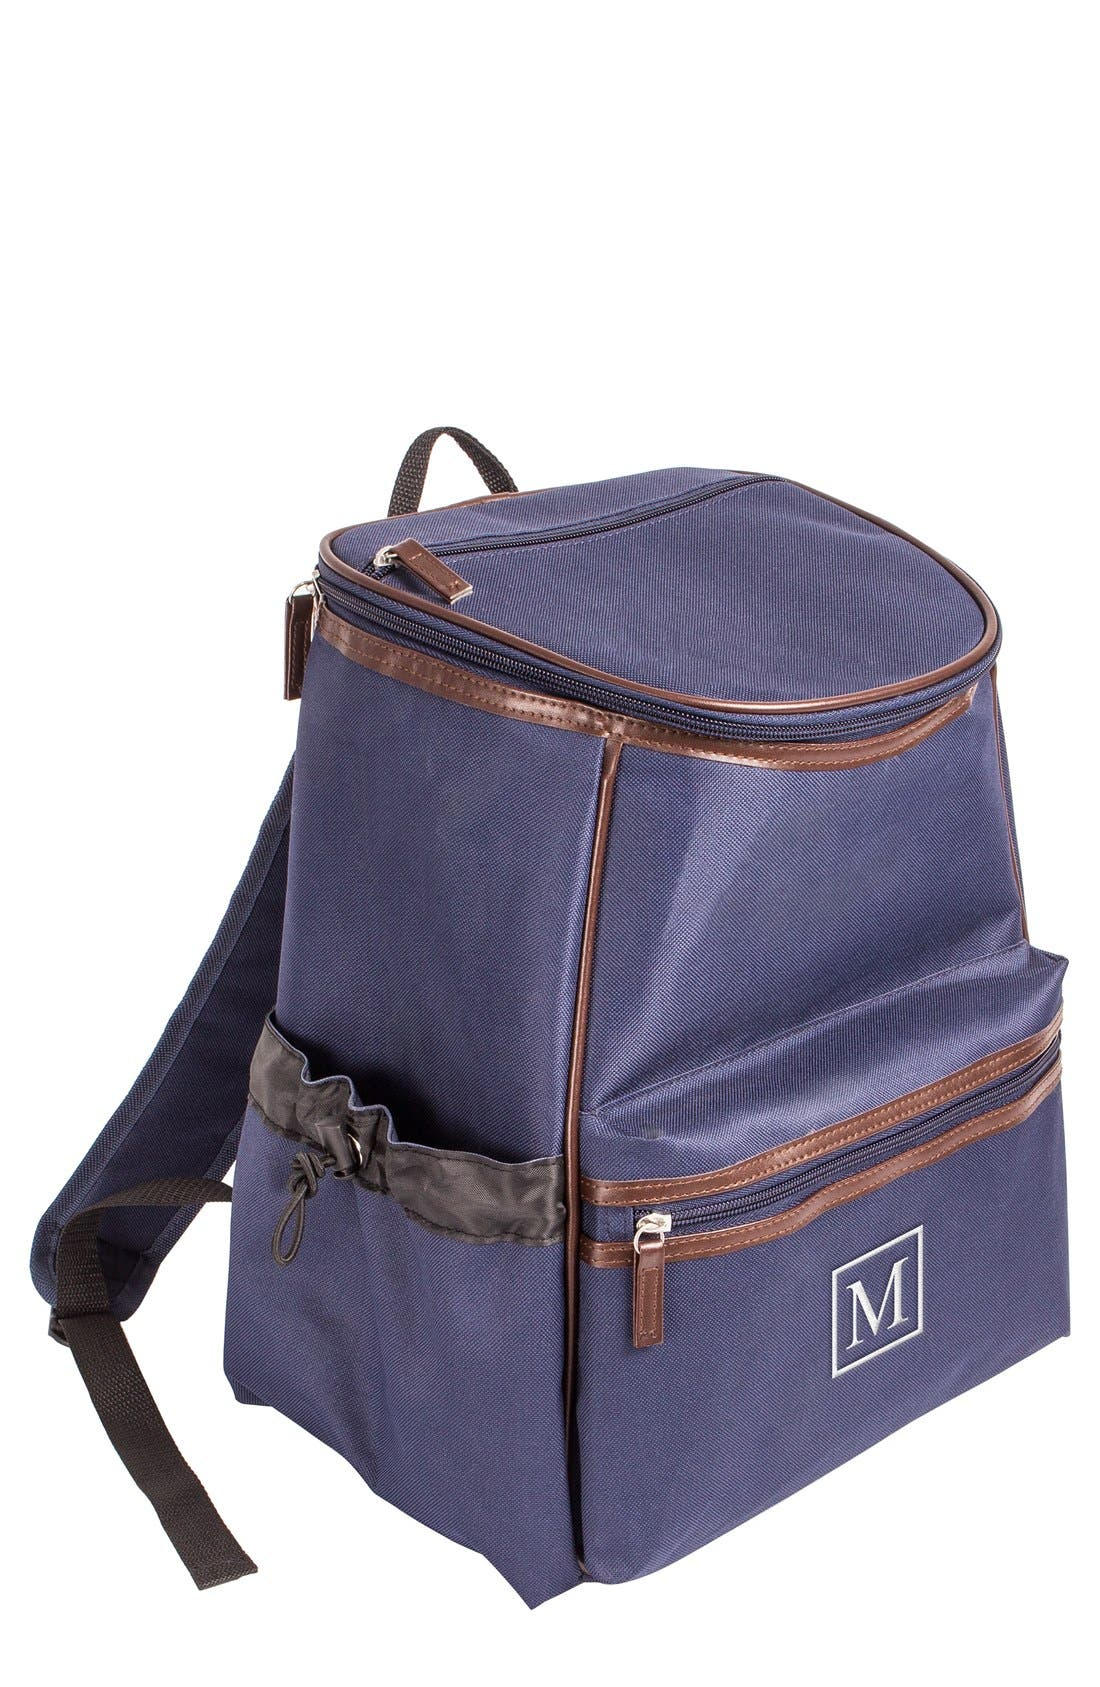 Monogram Insulated Backpack Cooler,                             Main thumbnail 1, color,                             Navy - M